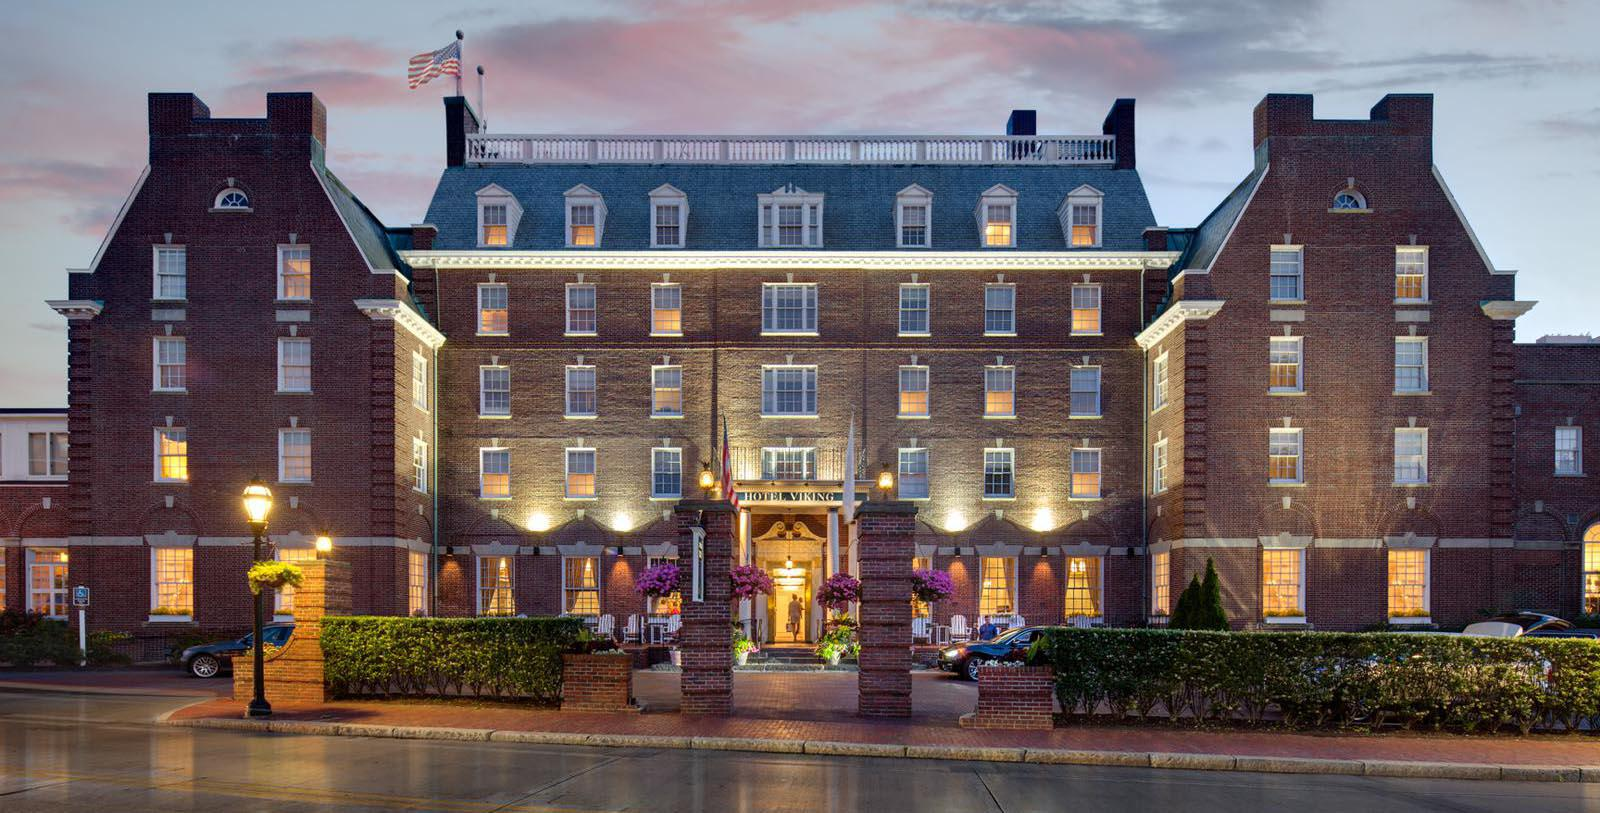 Image of Entrance The Hotel Viking, 1926, Member of Historic Hotels of America, in Newport, Rhode Island, Special Offers, Discounted Rates, Families, Romantic Escape, Honeymoons, Anniversaries, Reunions